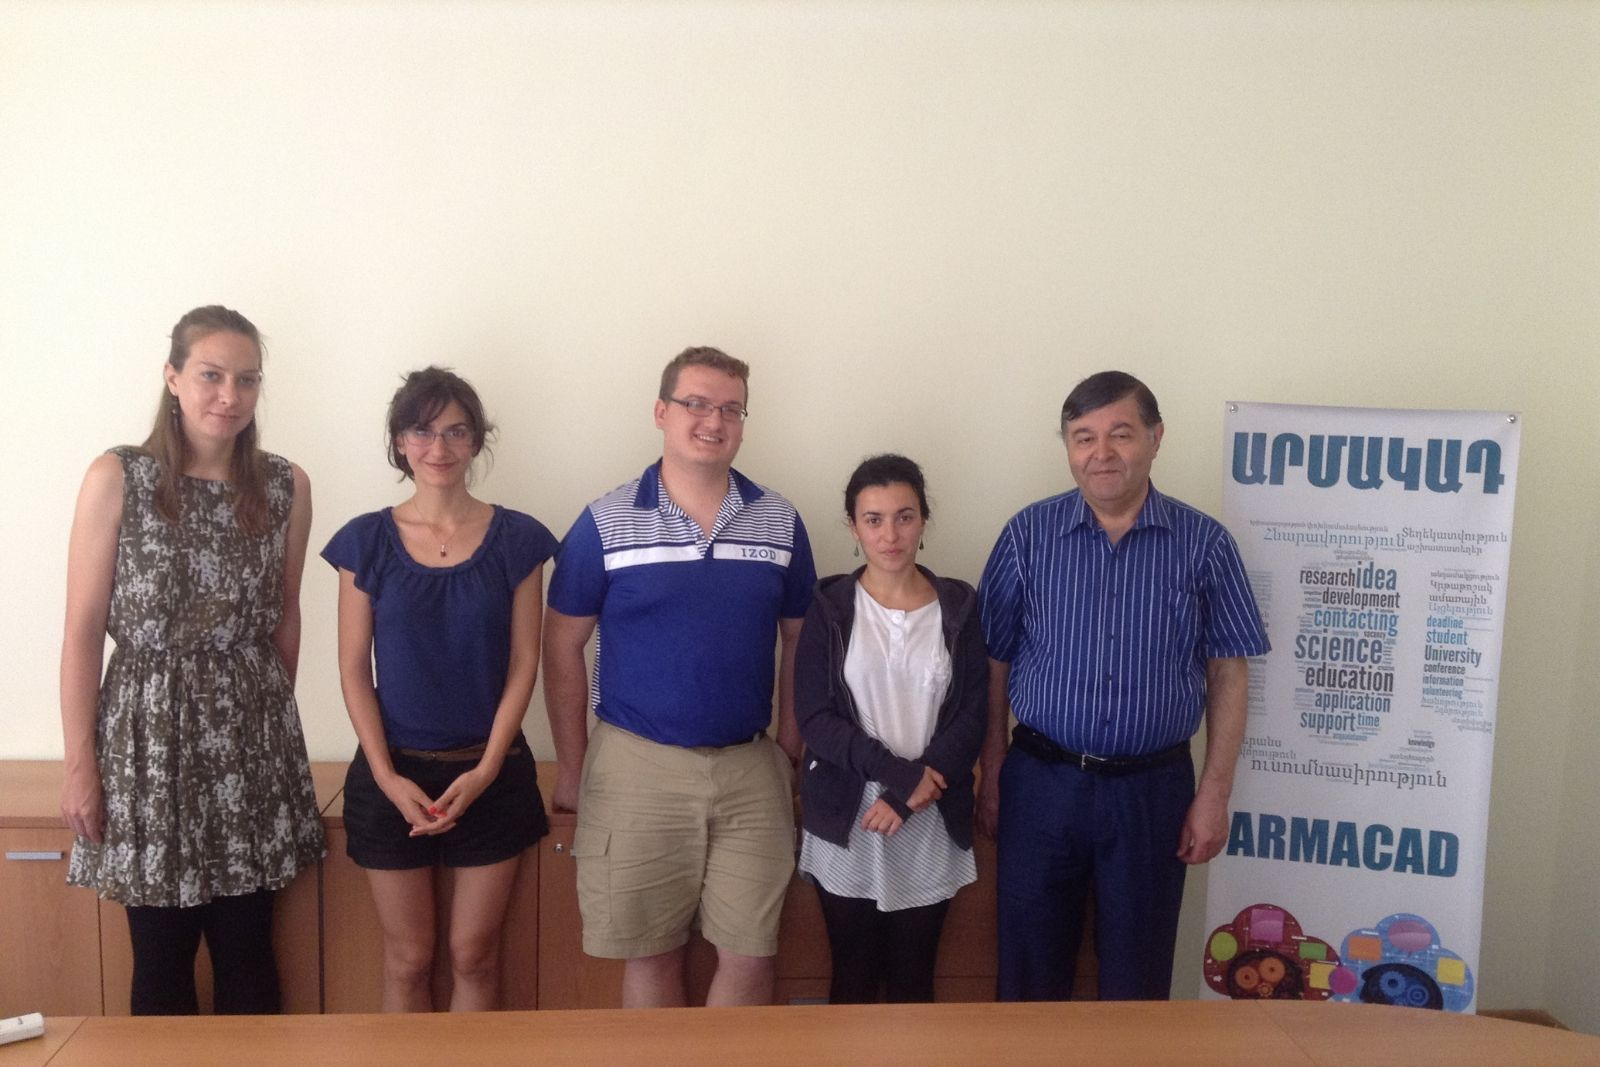 2014 Armenian Studies summer school participants (from left to right) Alysin Wharton, Monika Manishak, Erin Blankenship and Melanya Hamasyan with Prof. Hayrapet Margaryan